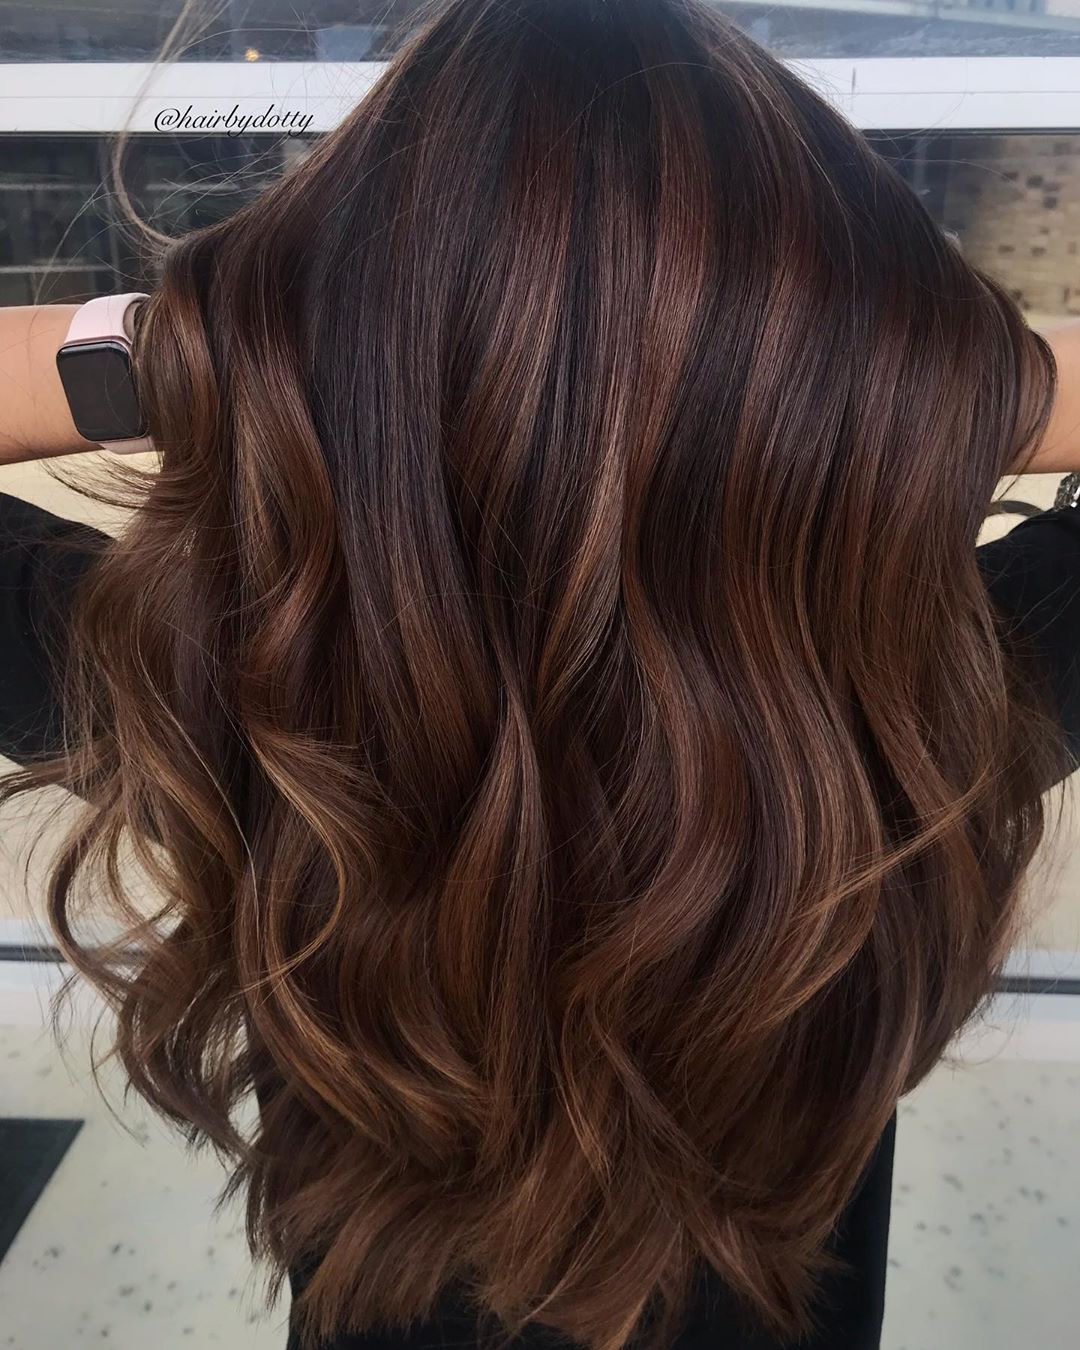 Hair Color For Dark Hair – 3 Tips For the Best Results